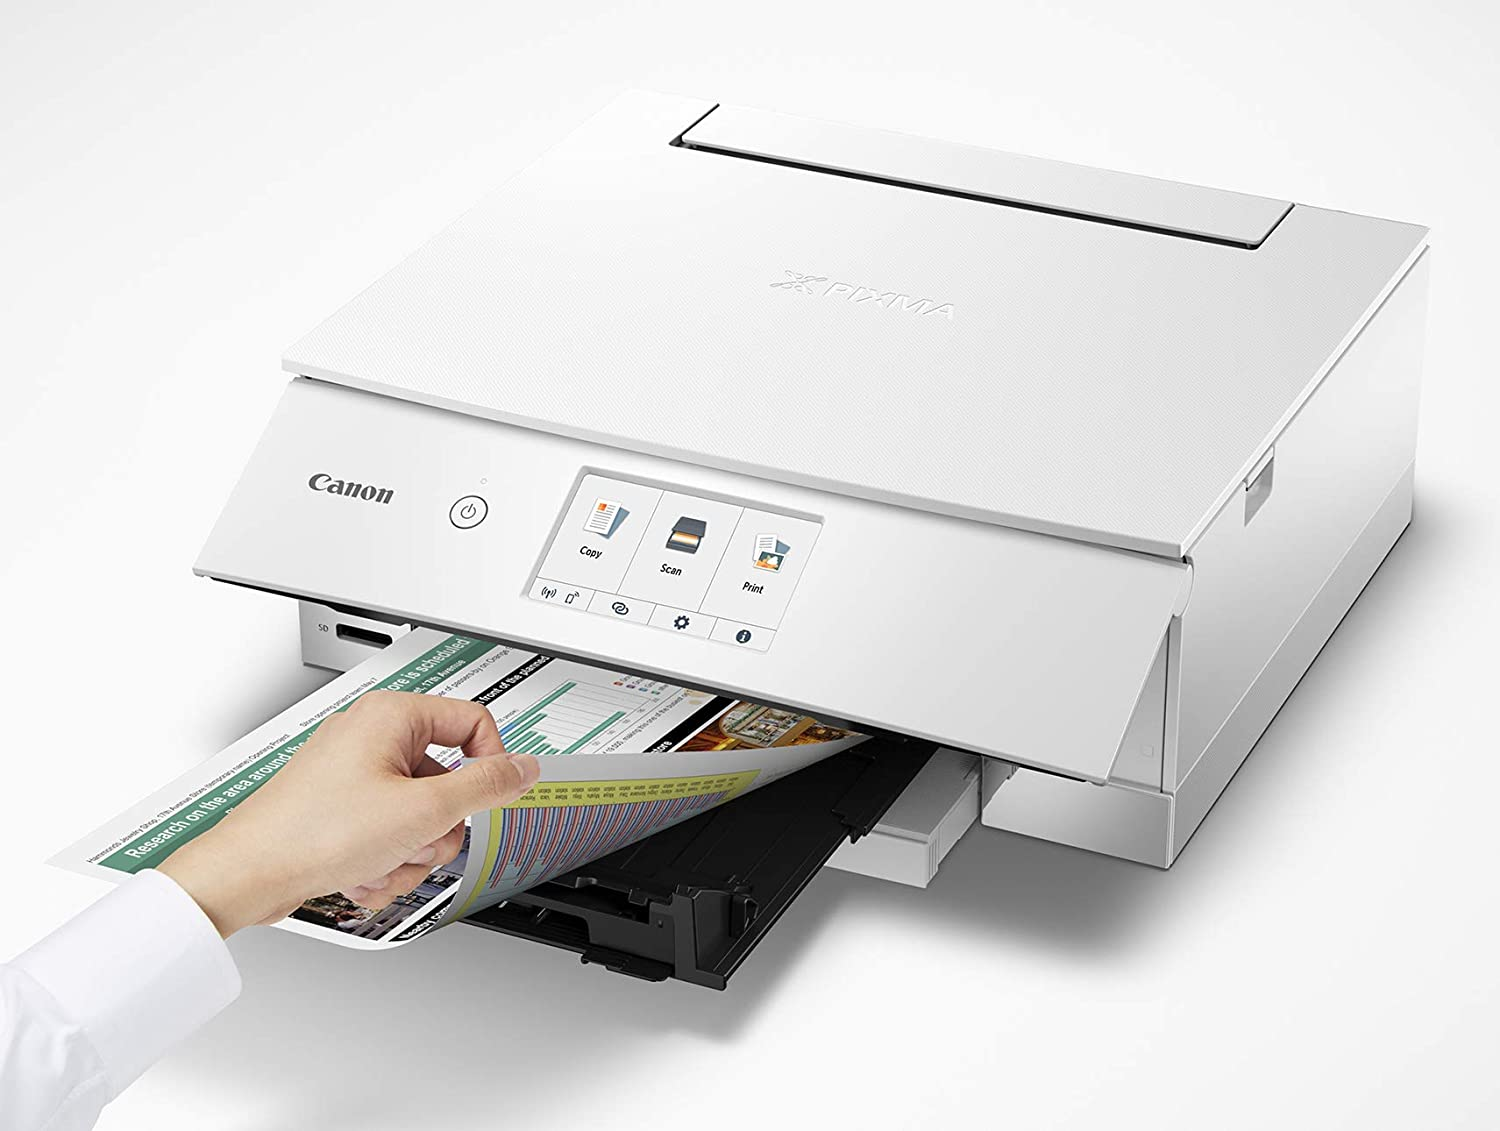 TS8320 All In One Wireless Color Printer, Copier, Scanner, Home Inkjet Printerwith Mobile Printing, White, Amazon Dash Replenishment Ready